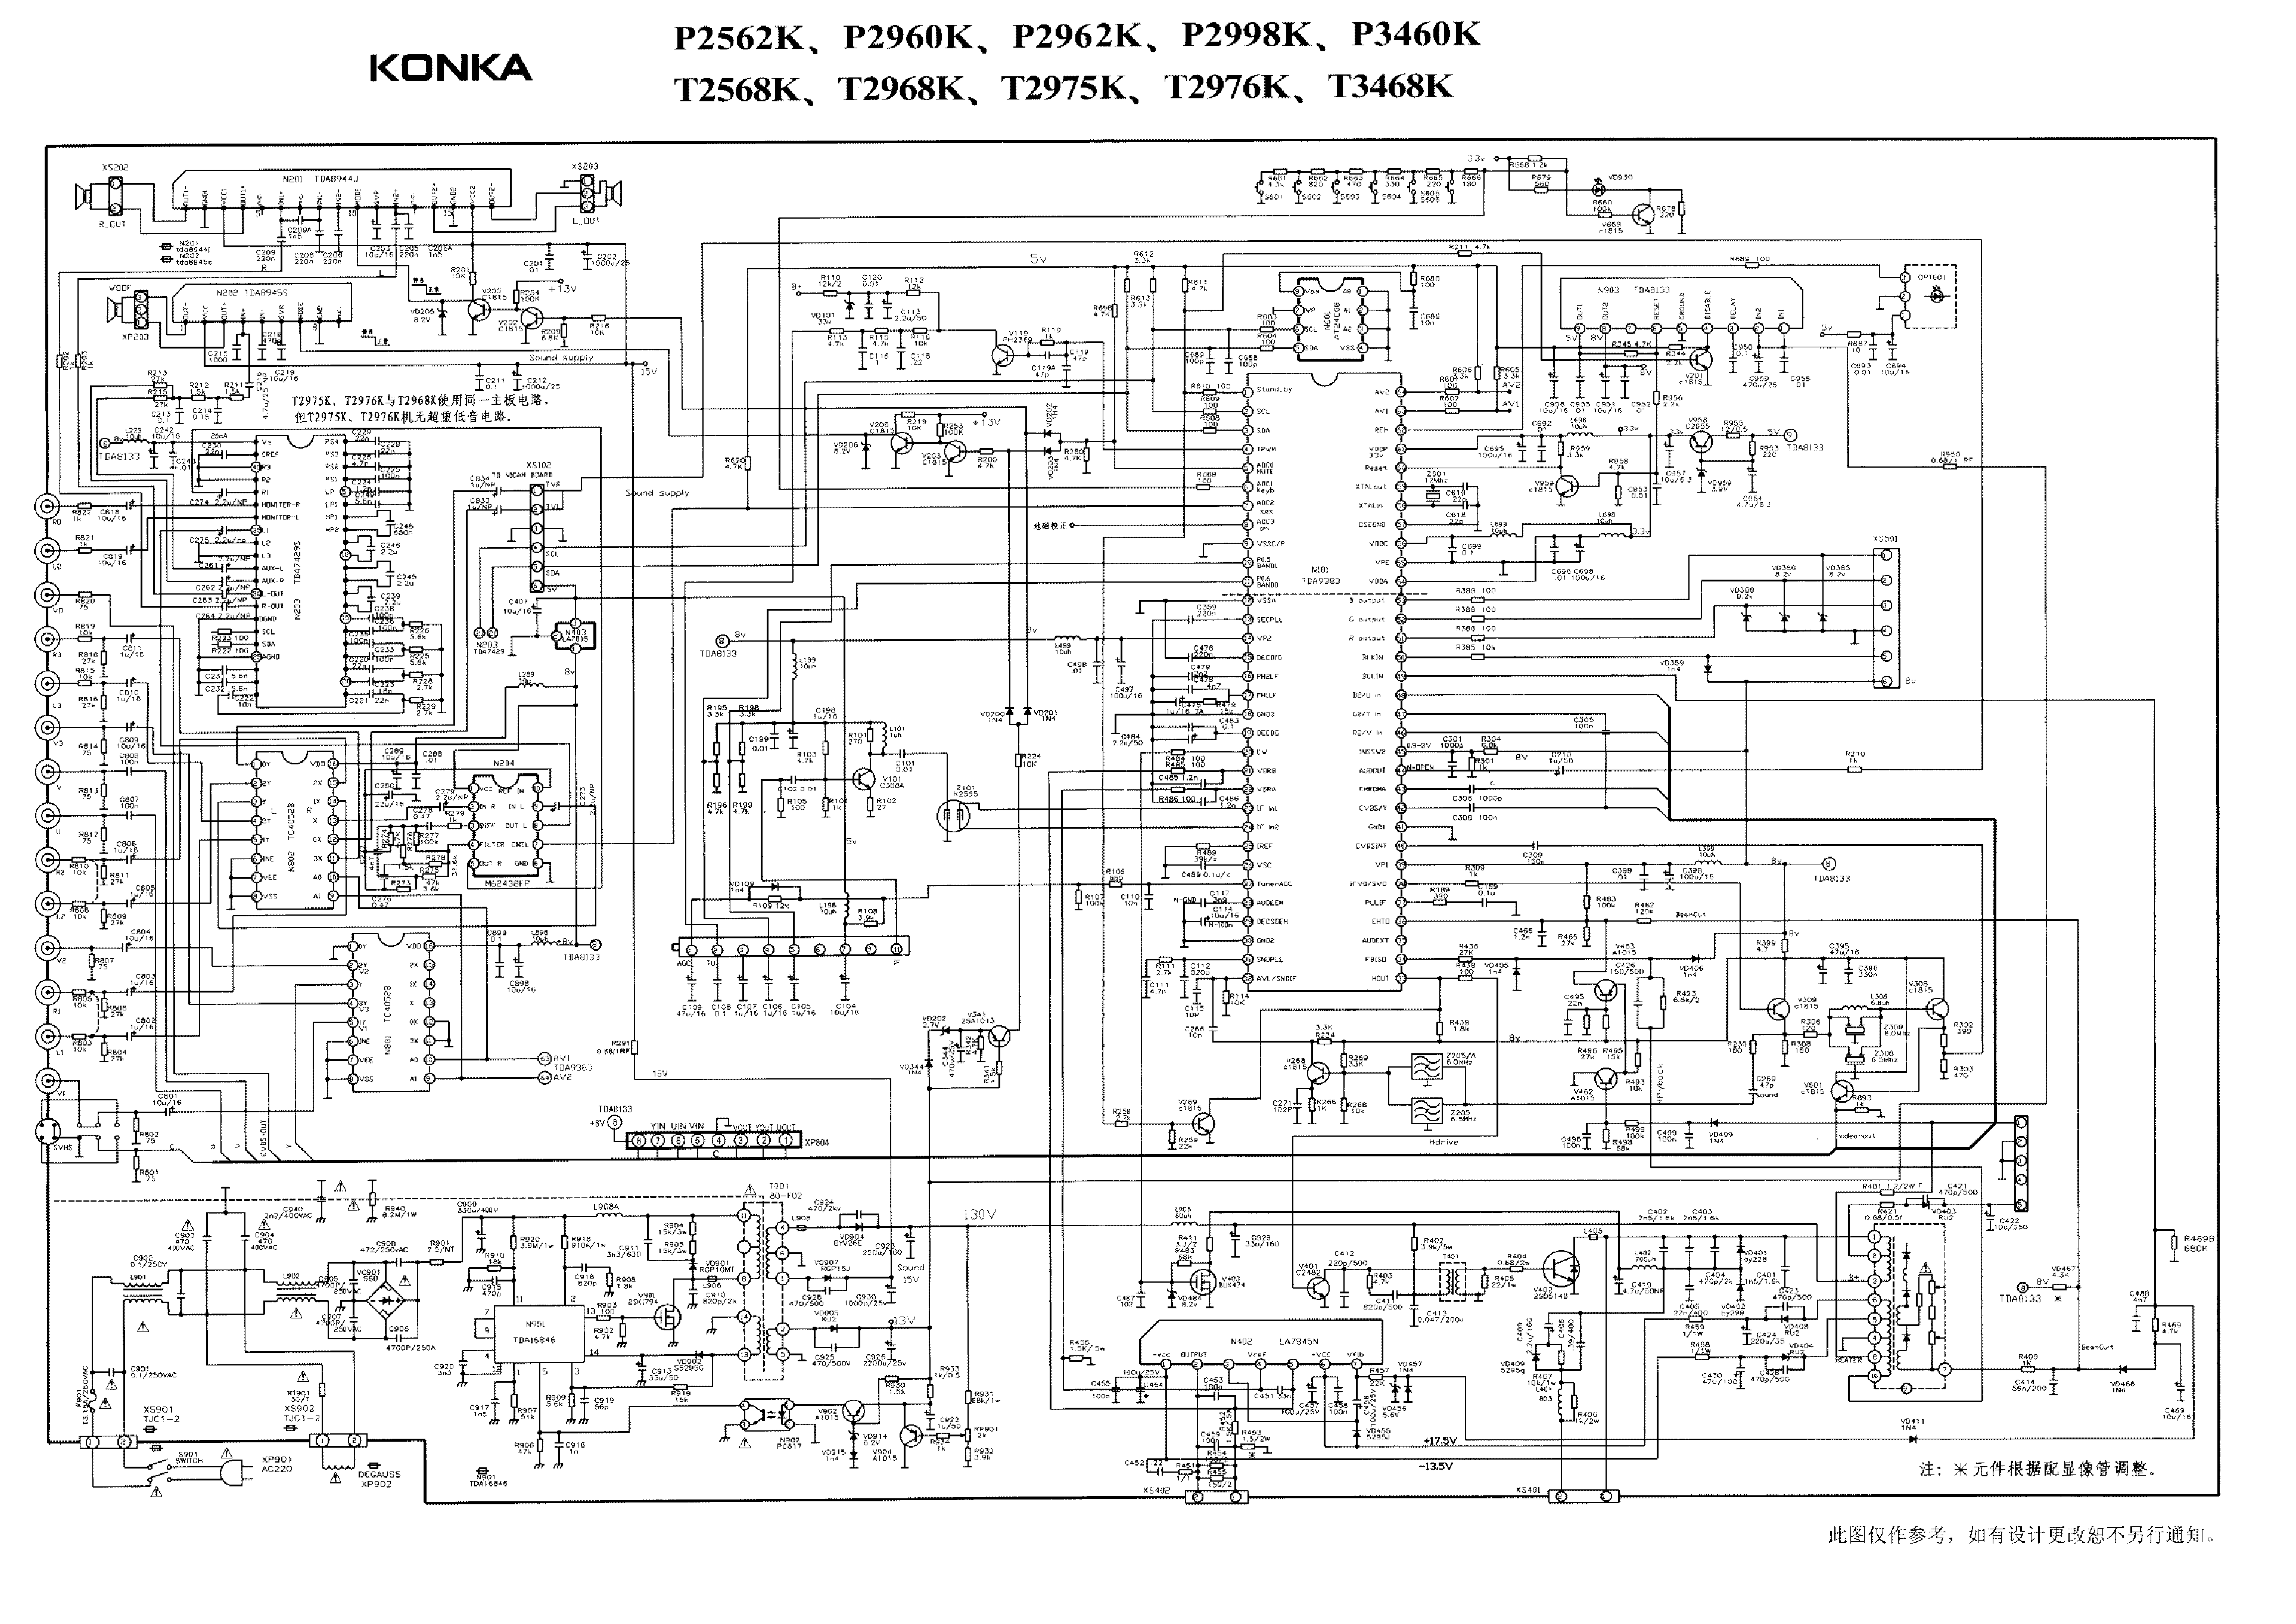 konka schematic diagrams t2568k